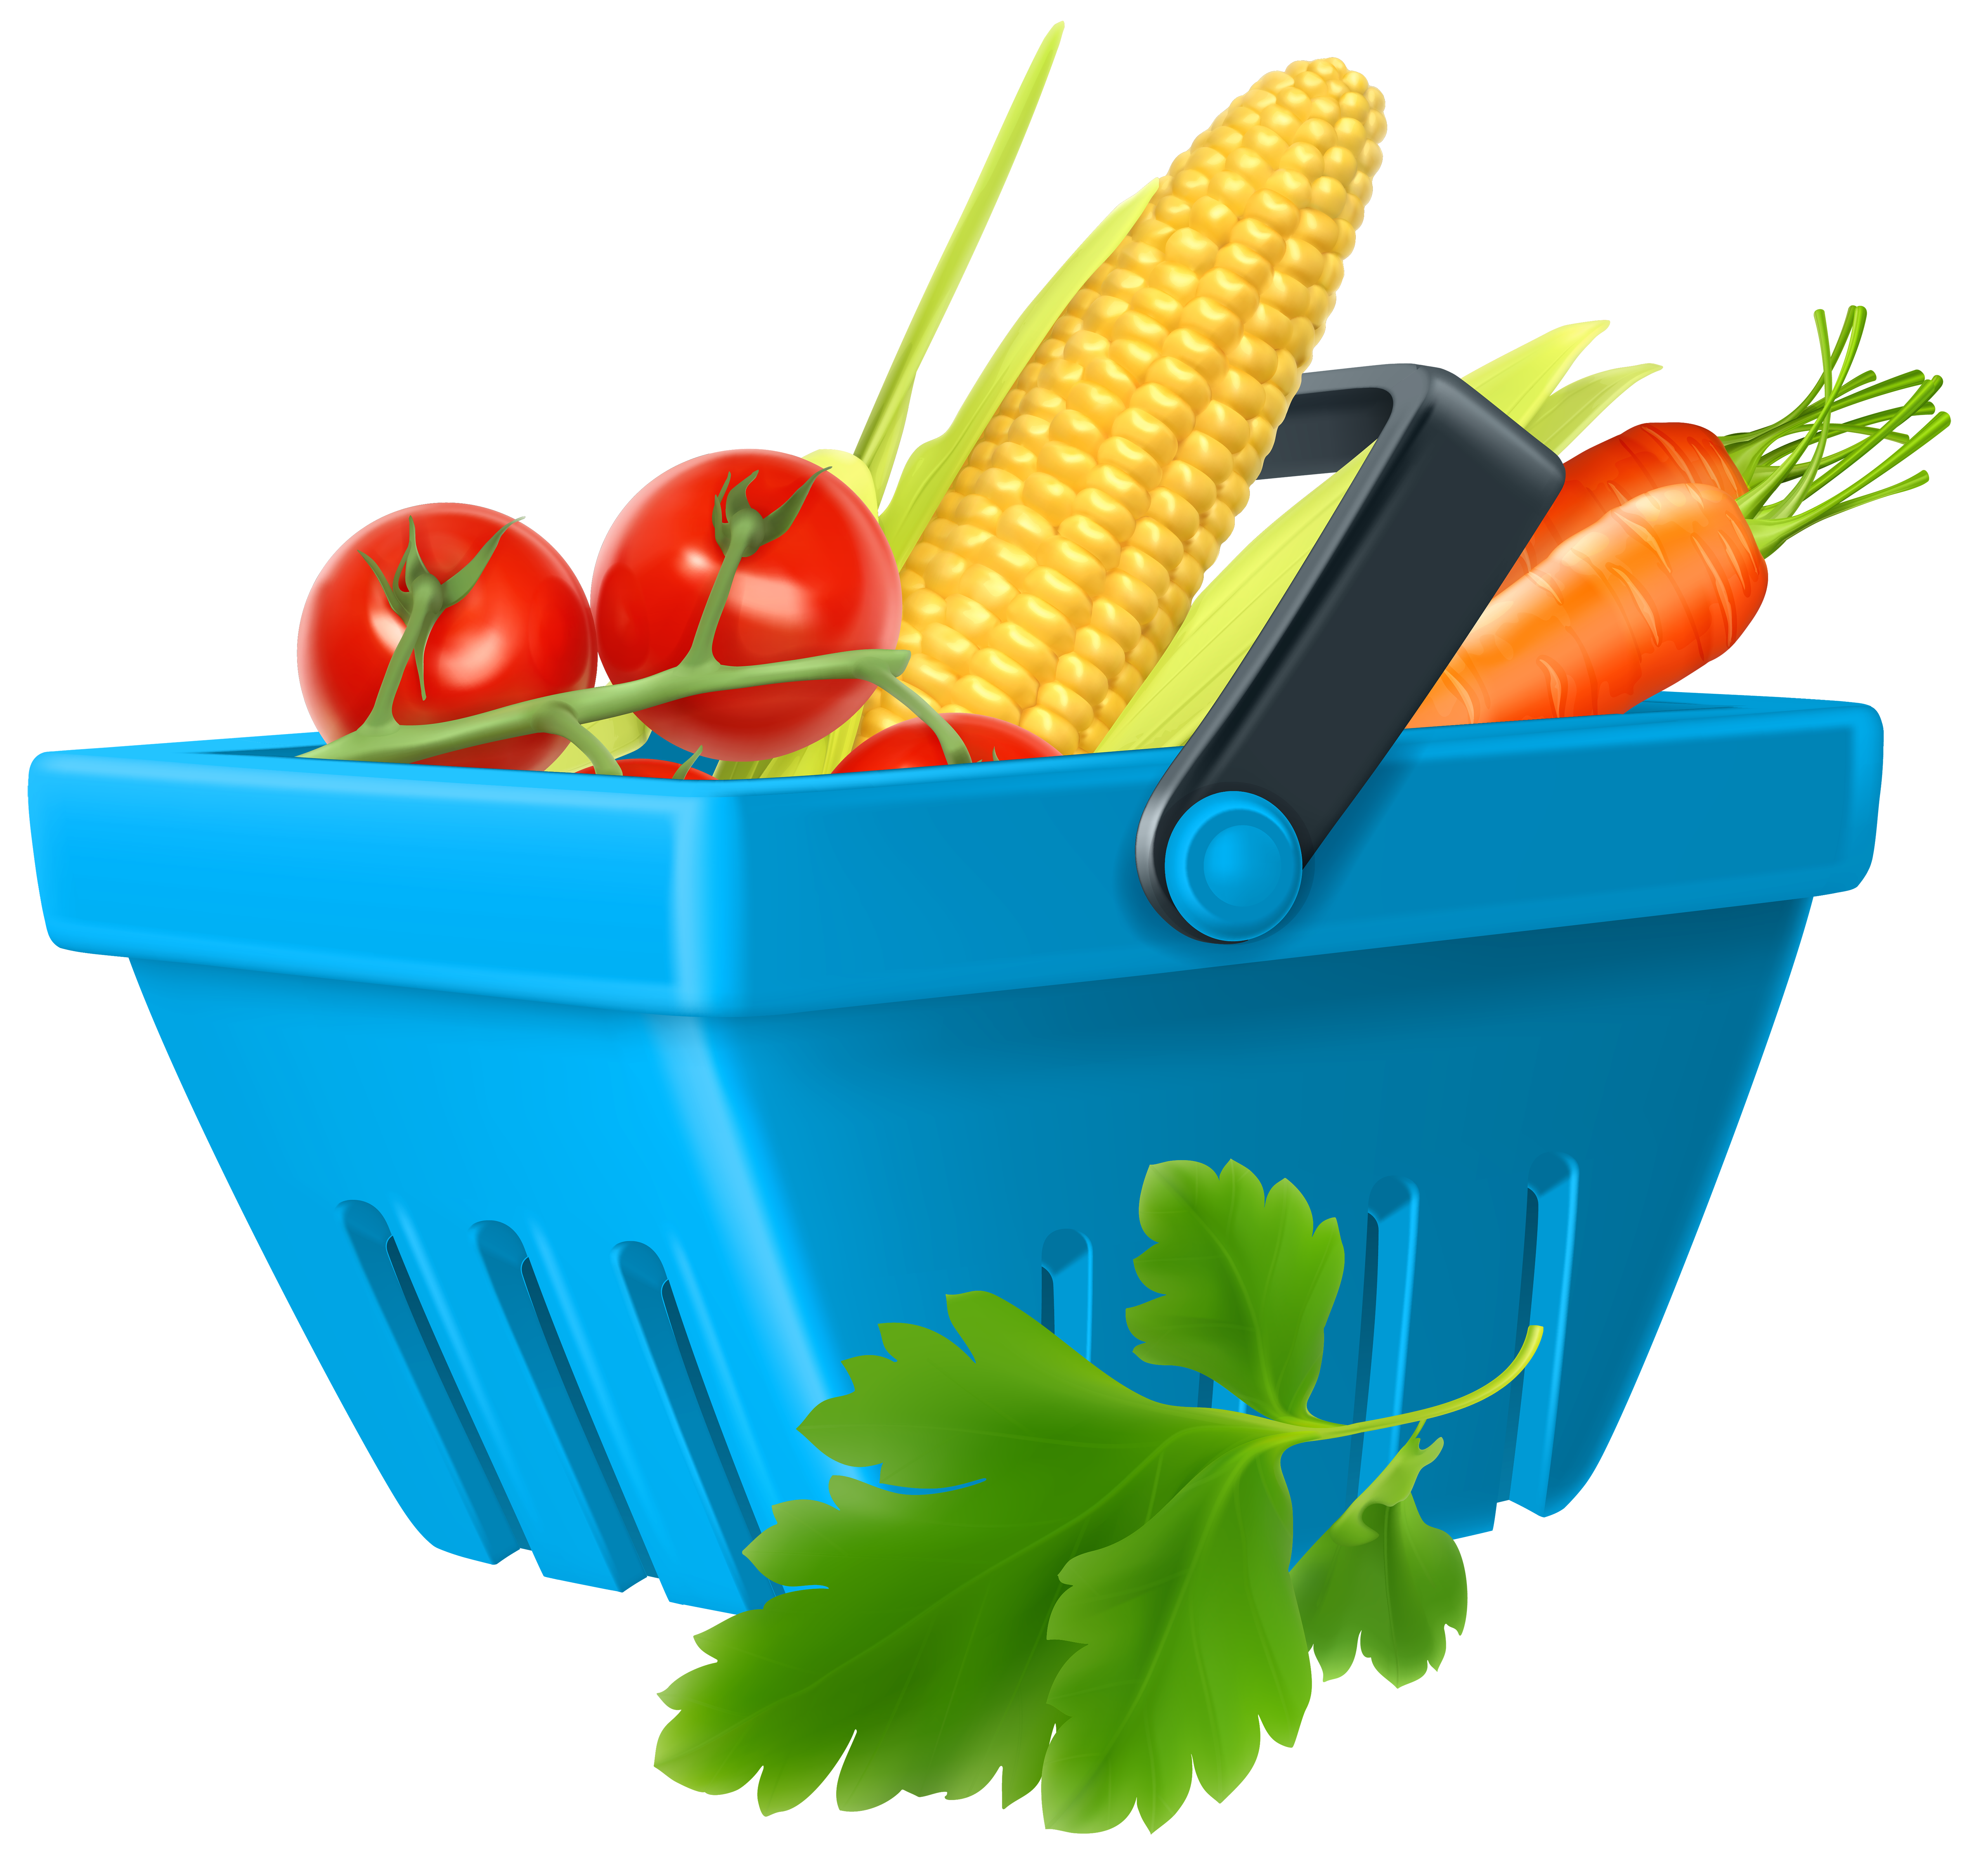 Fish and vegetables clipart image royalty free stock Basket with Vegetables PNG Clipart - Best WEB Clipart image royalty free stock